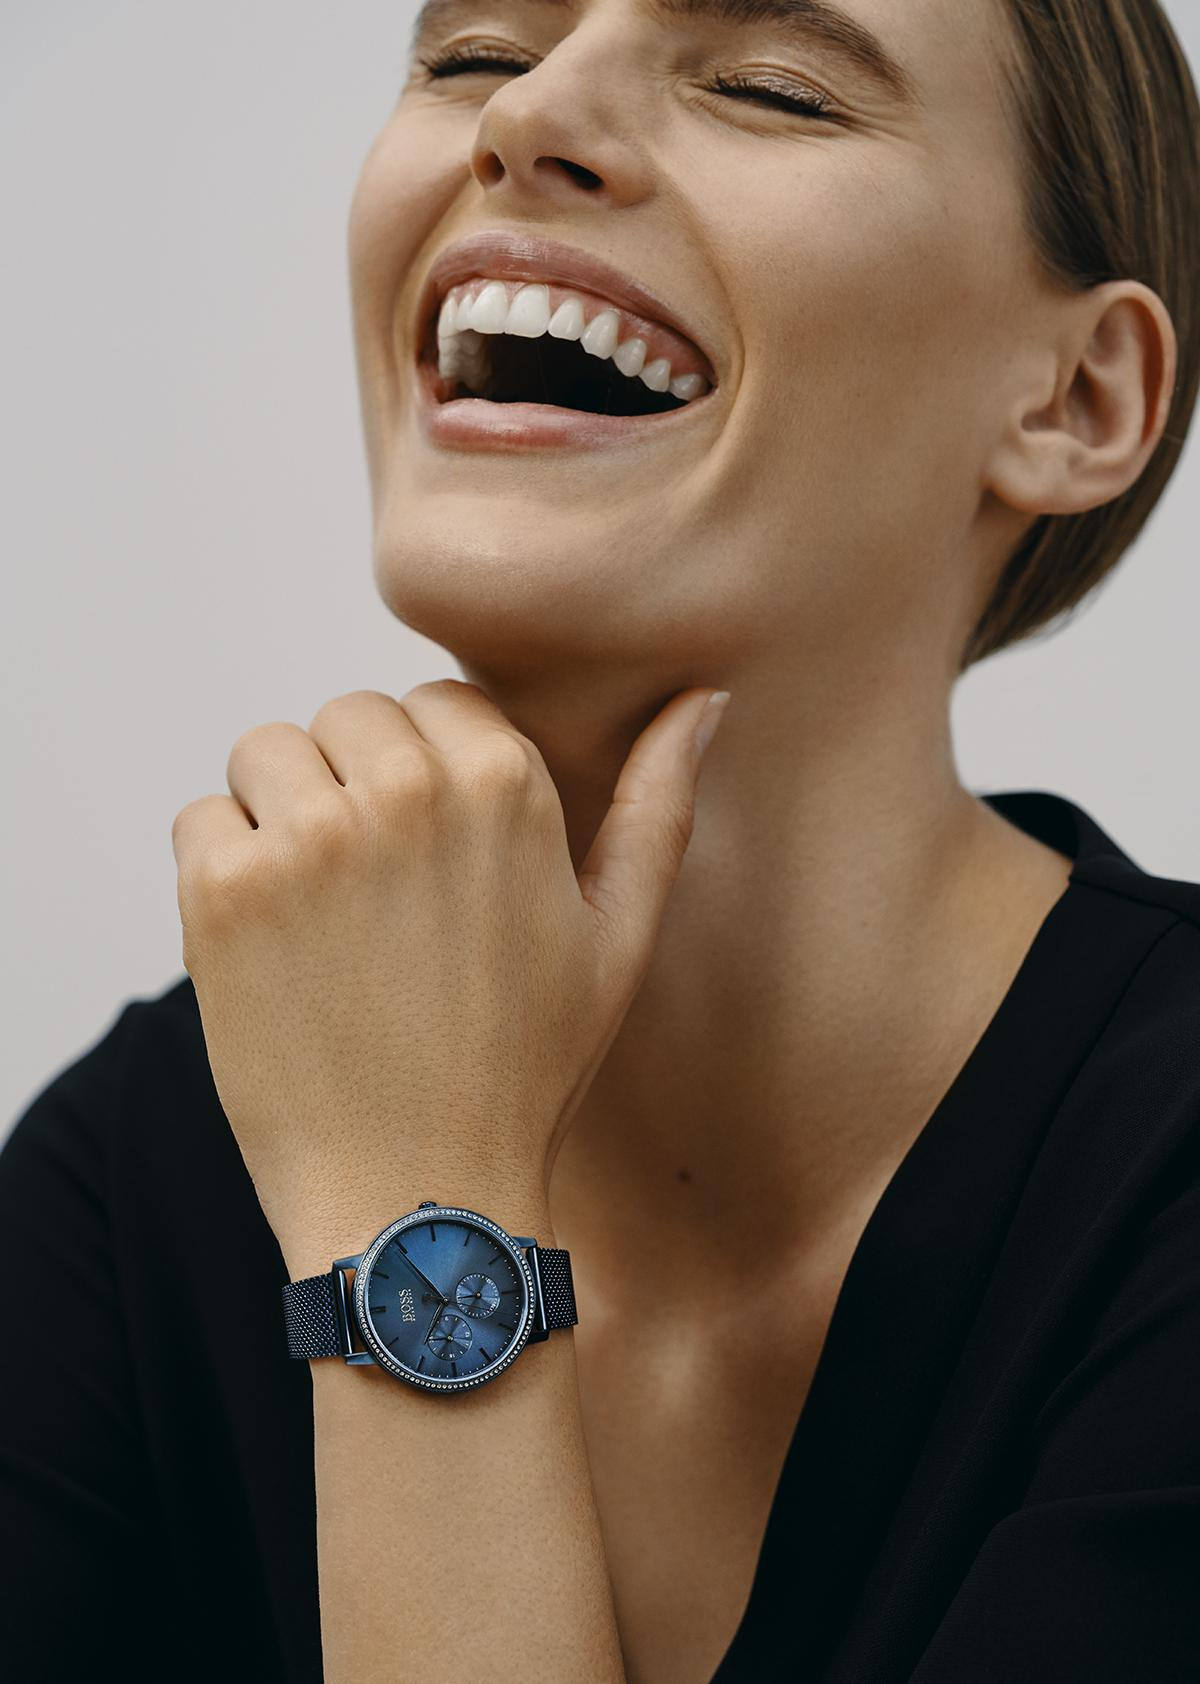 Lady smile with BOSS watch